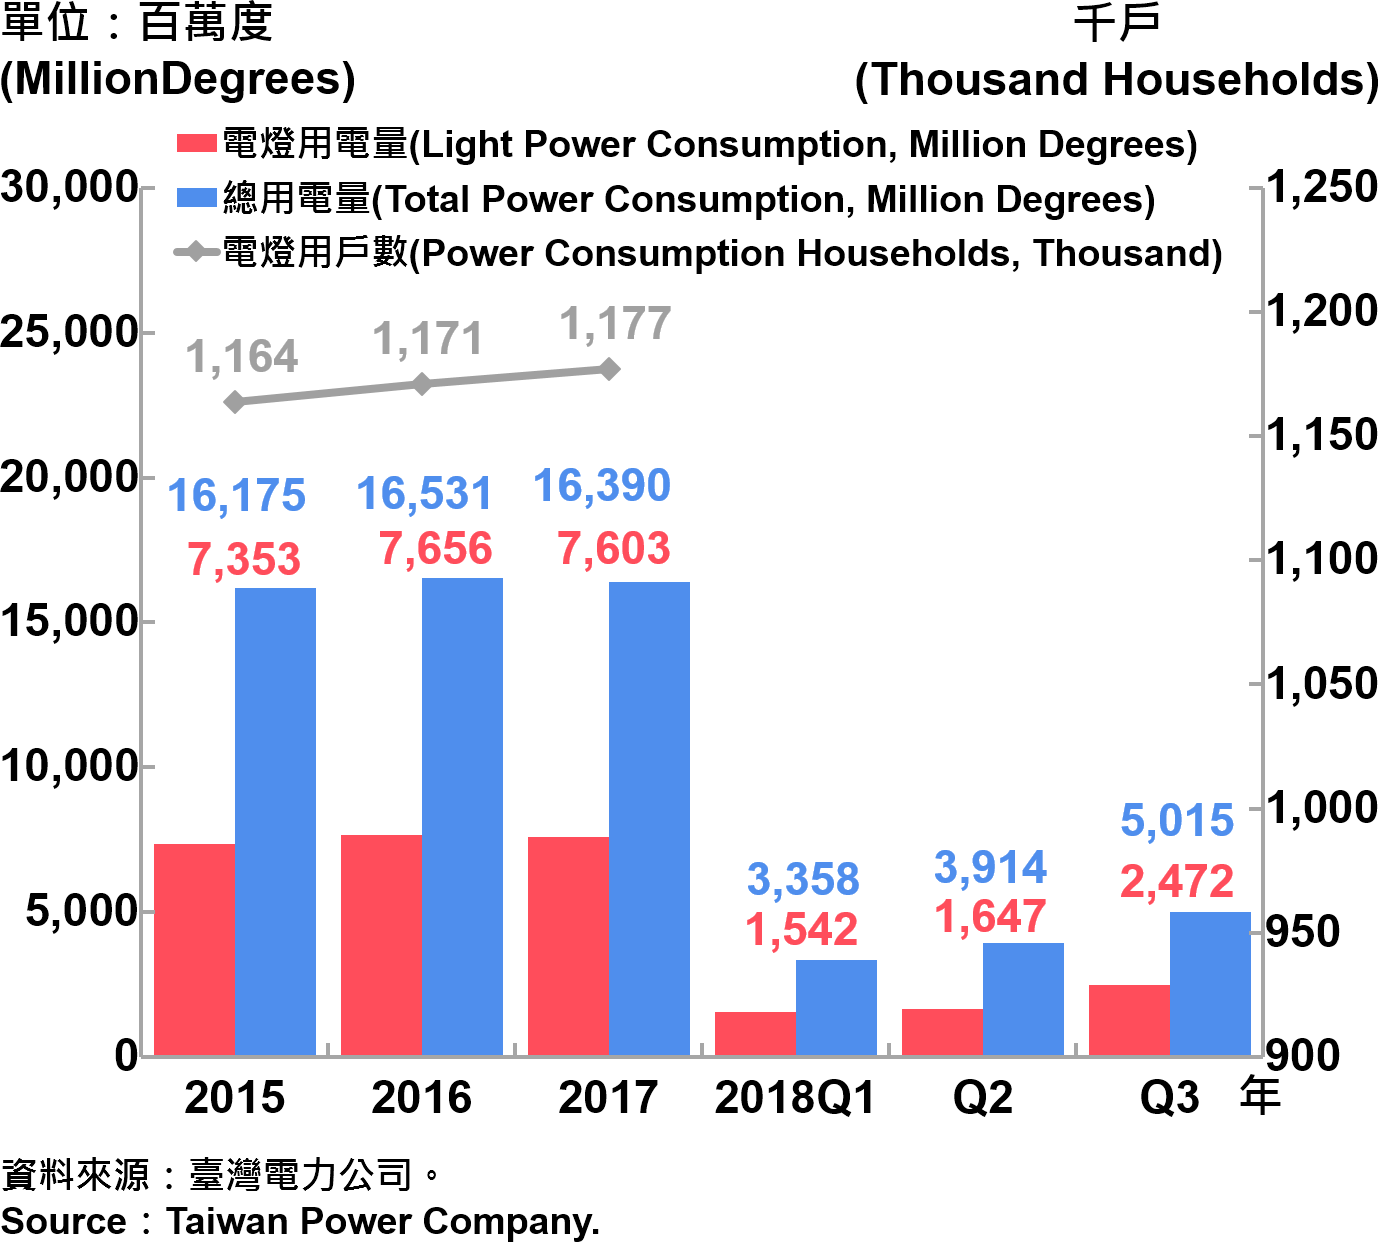 臺北市電力總用電量—2018Q3 Electric Power Consumption in Taipei City—2018Q3